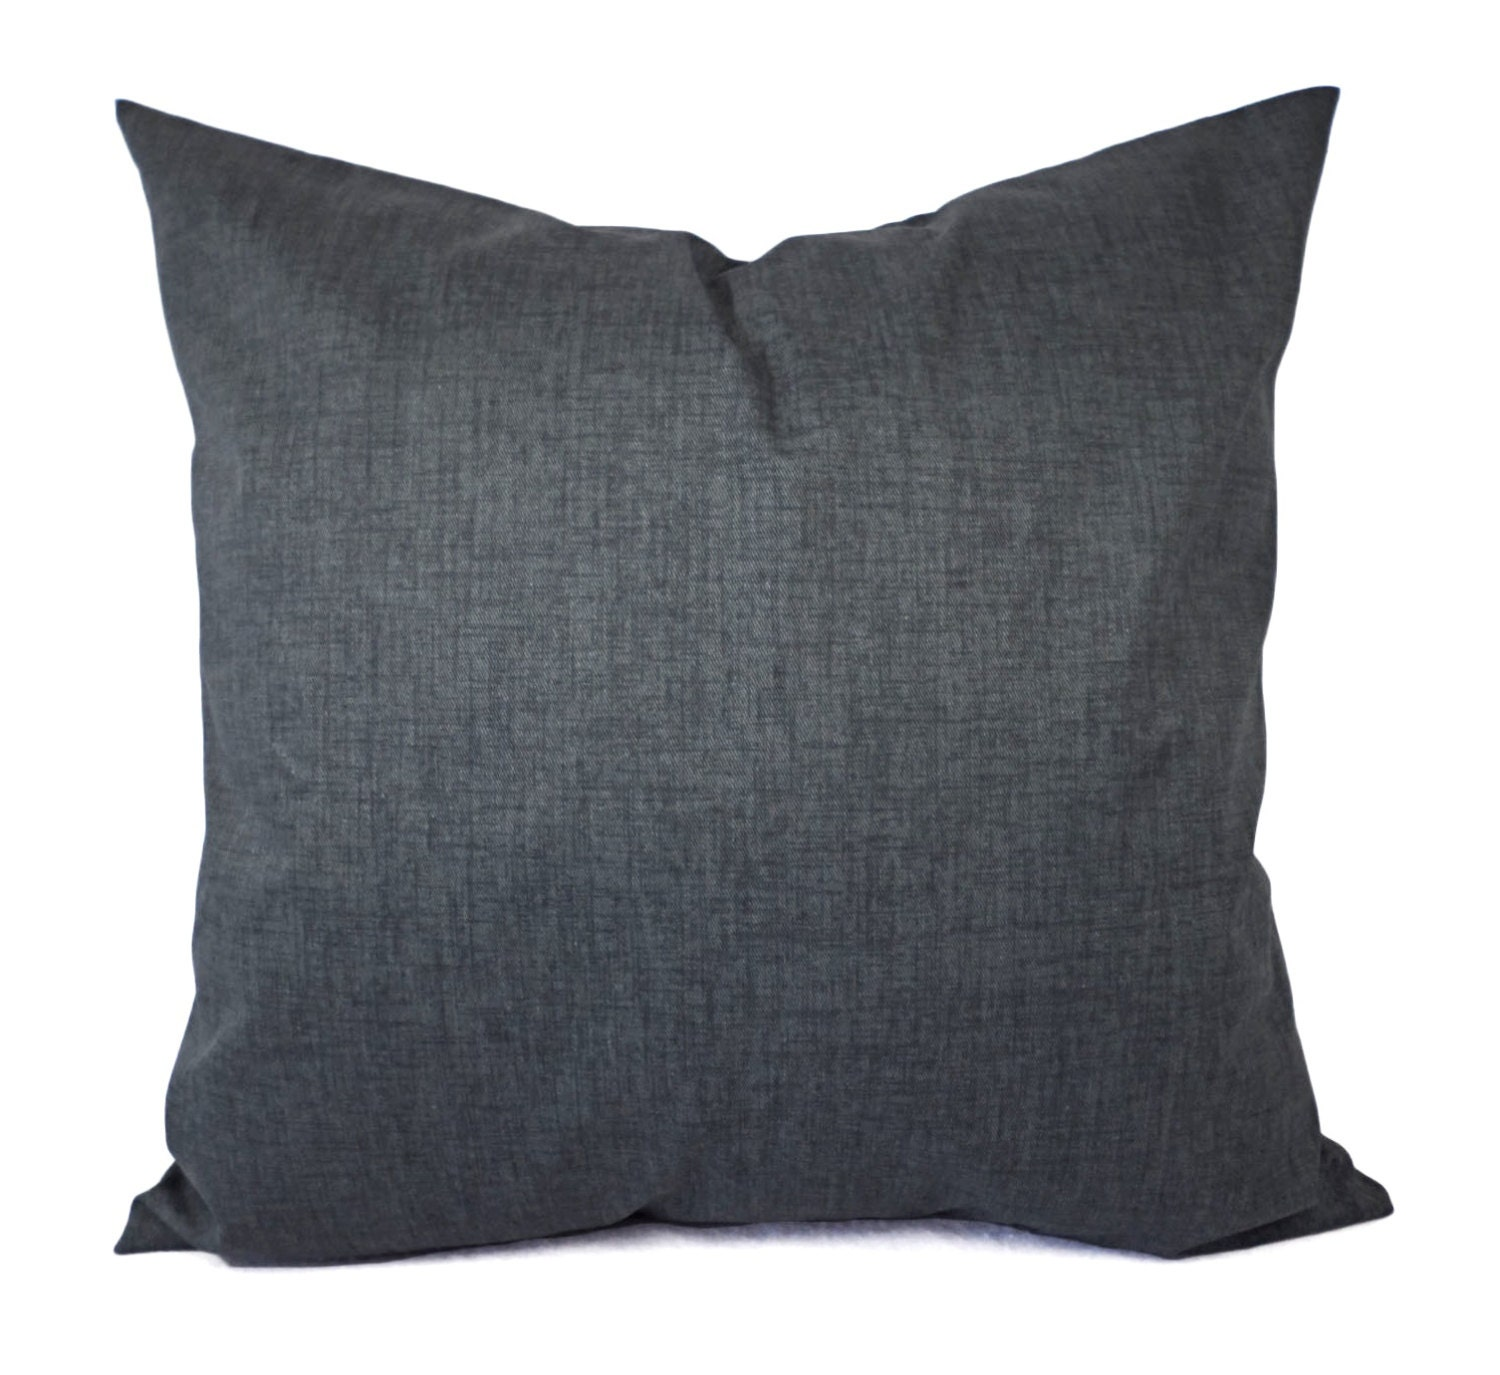 Shop Target for Gray Throw Pillows you will love at great low prices. Spend $35+ or use your REDcard & get free 2-day shipping on most items or same-day pick-up in store.